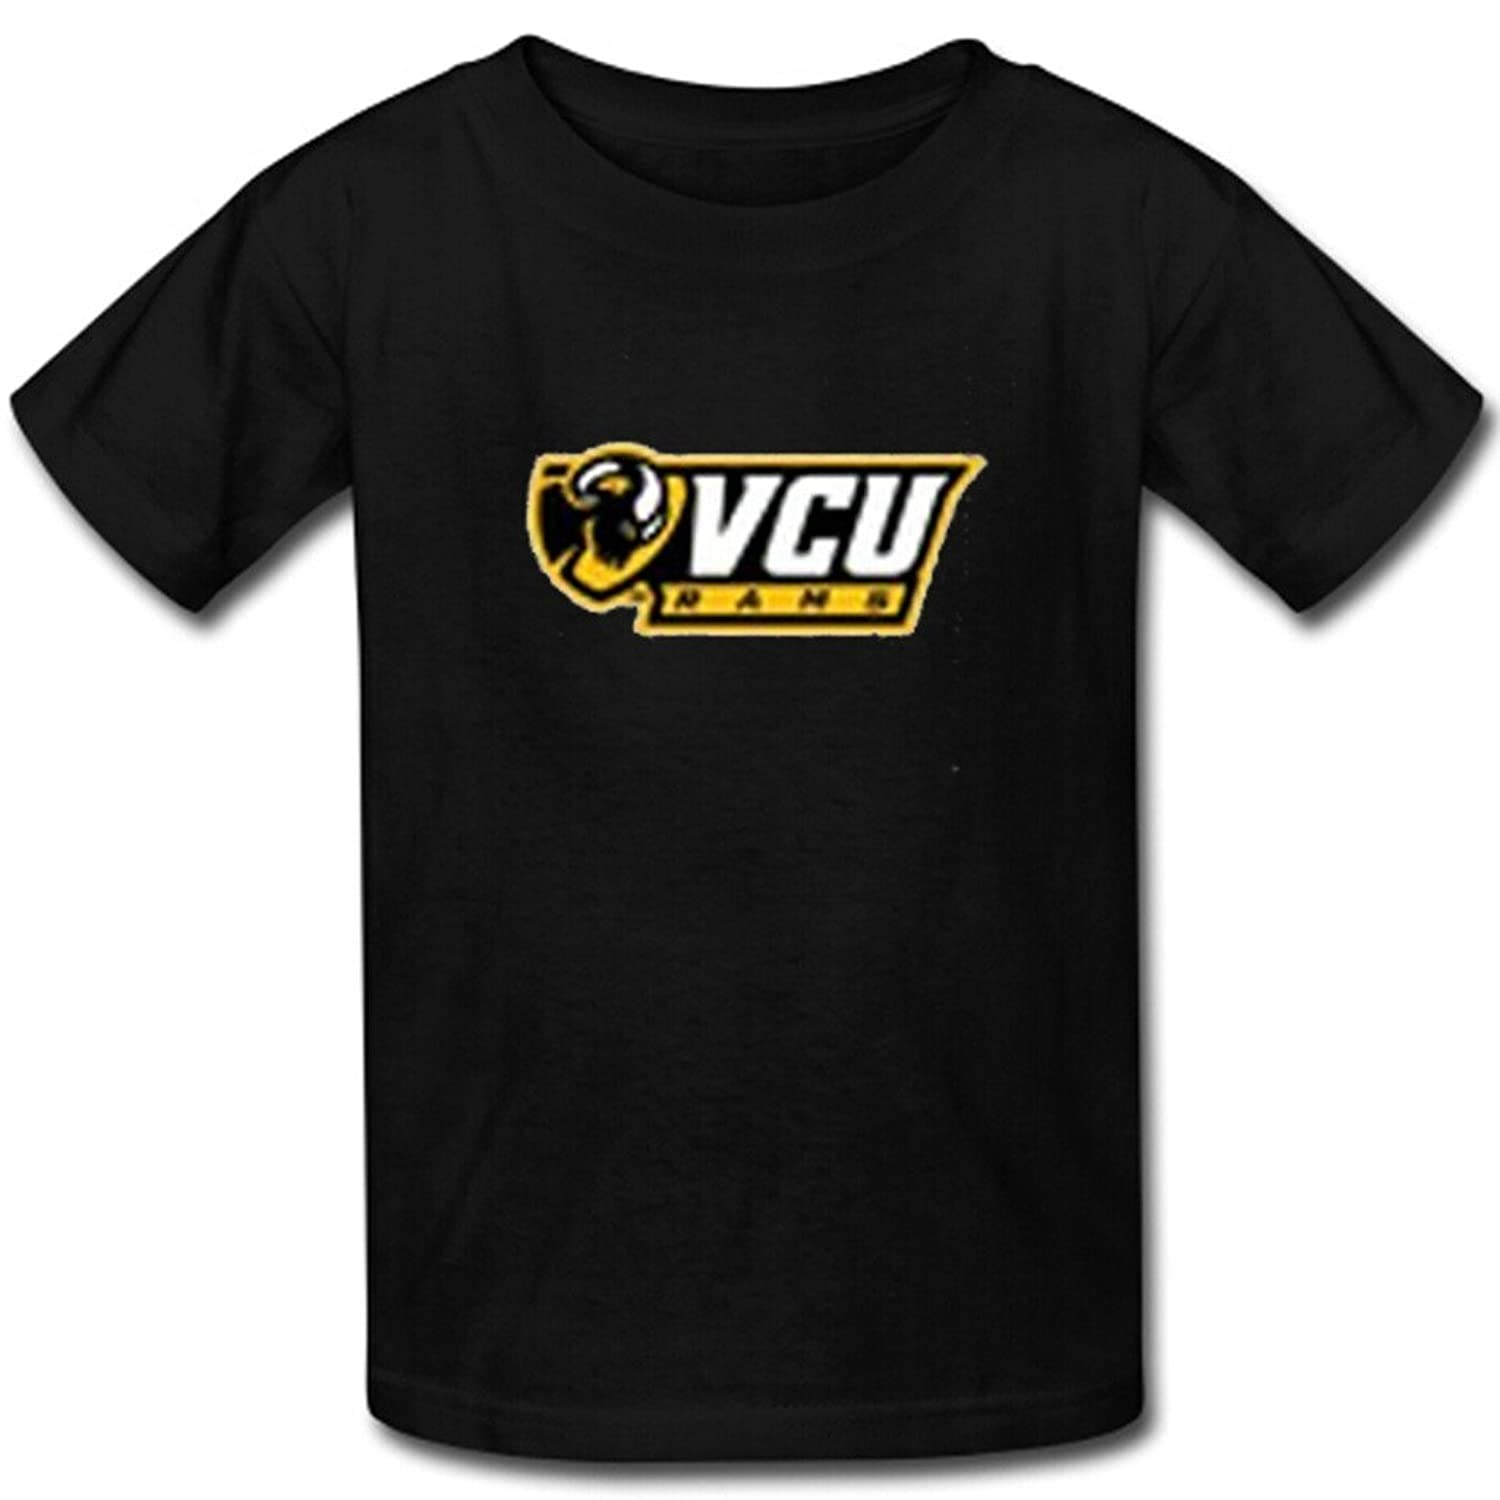 Michaner Walosde Booster Men's custom VCU Rams T-shirt cotton short sleeve shirts for men